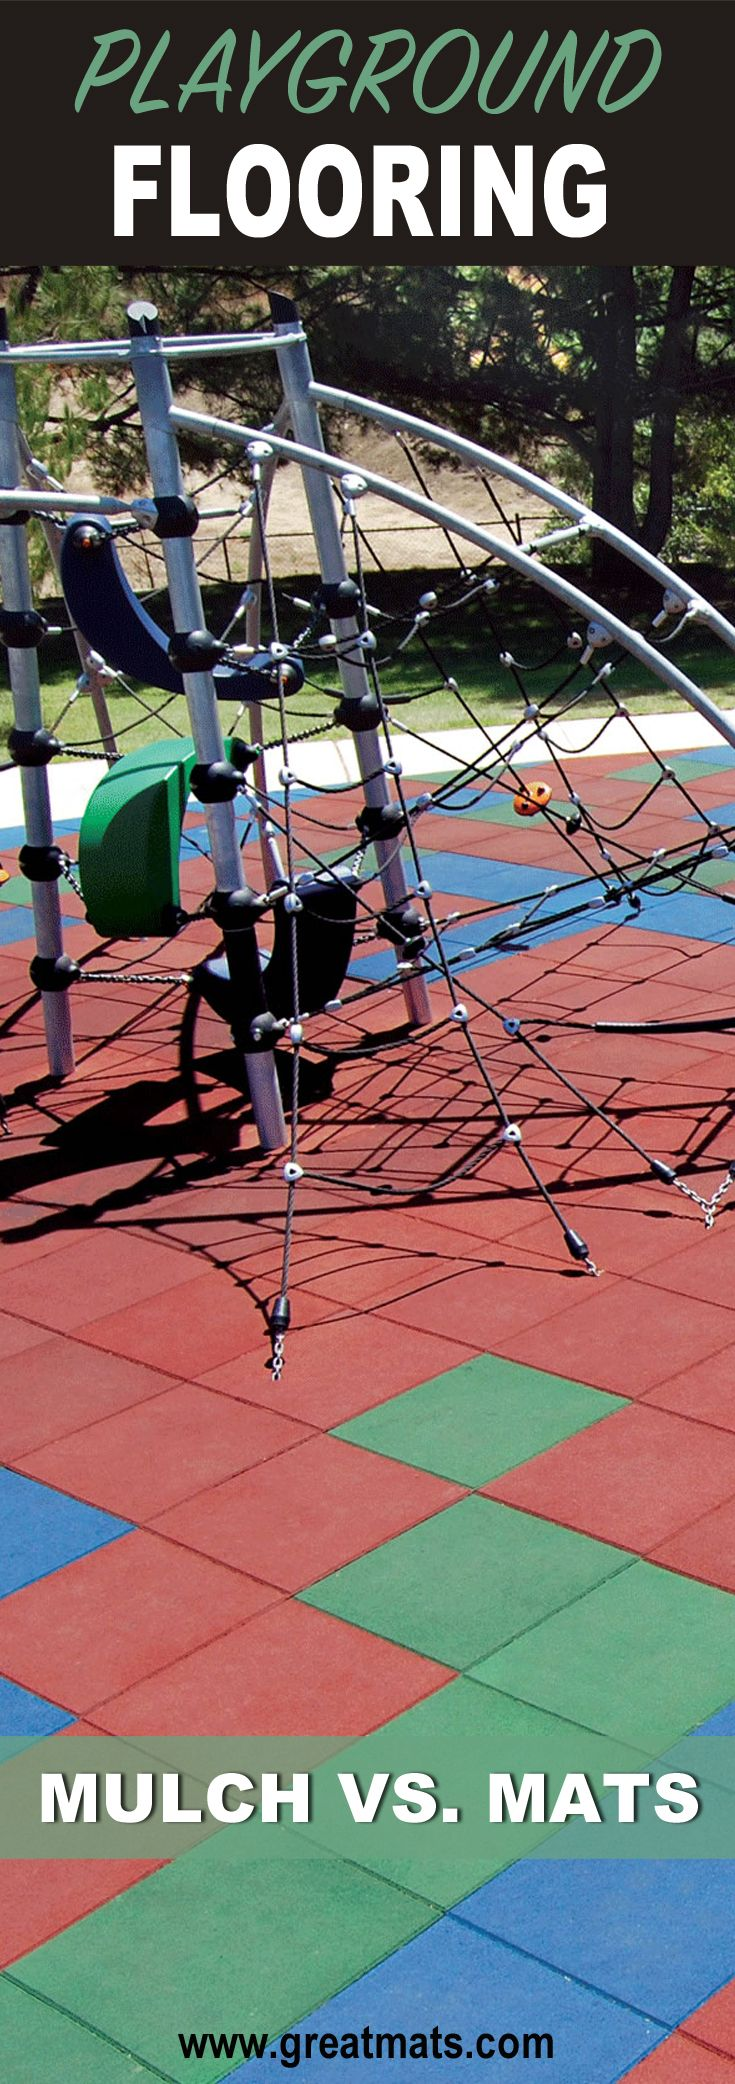 Which Is Better For Playground Safety   Playground Mulch Or Playground  Mats? Find Out Here